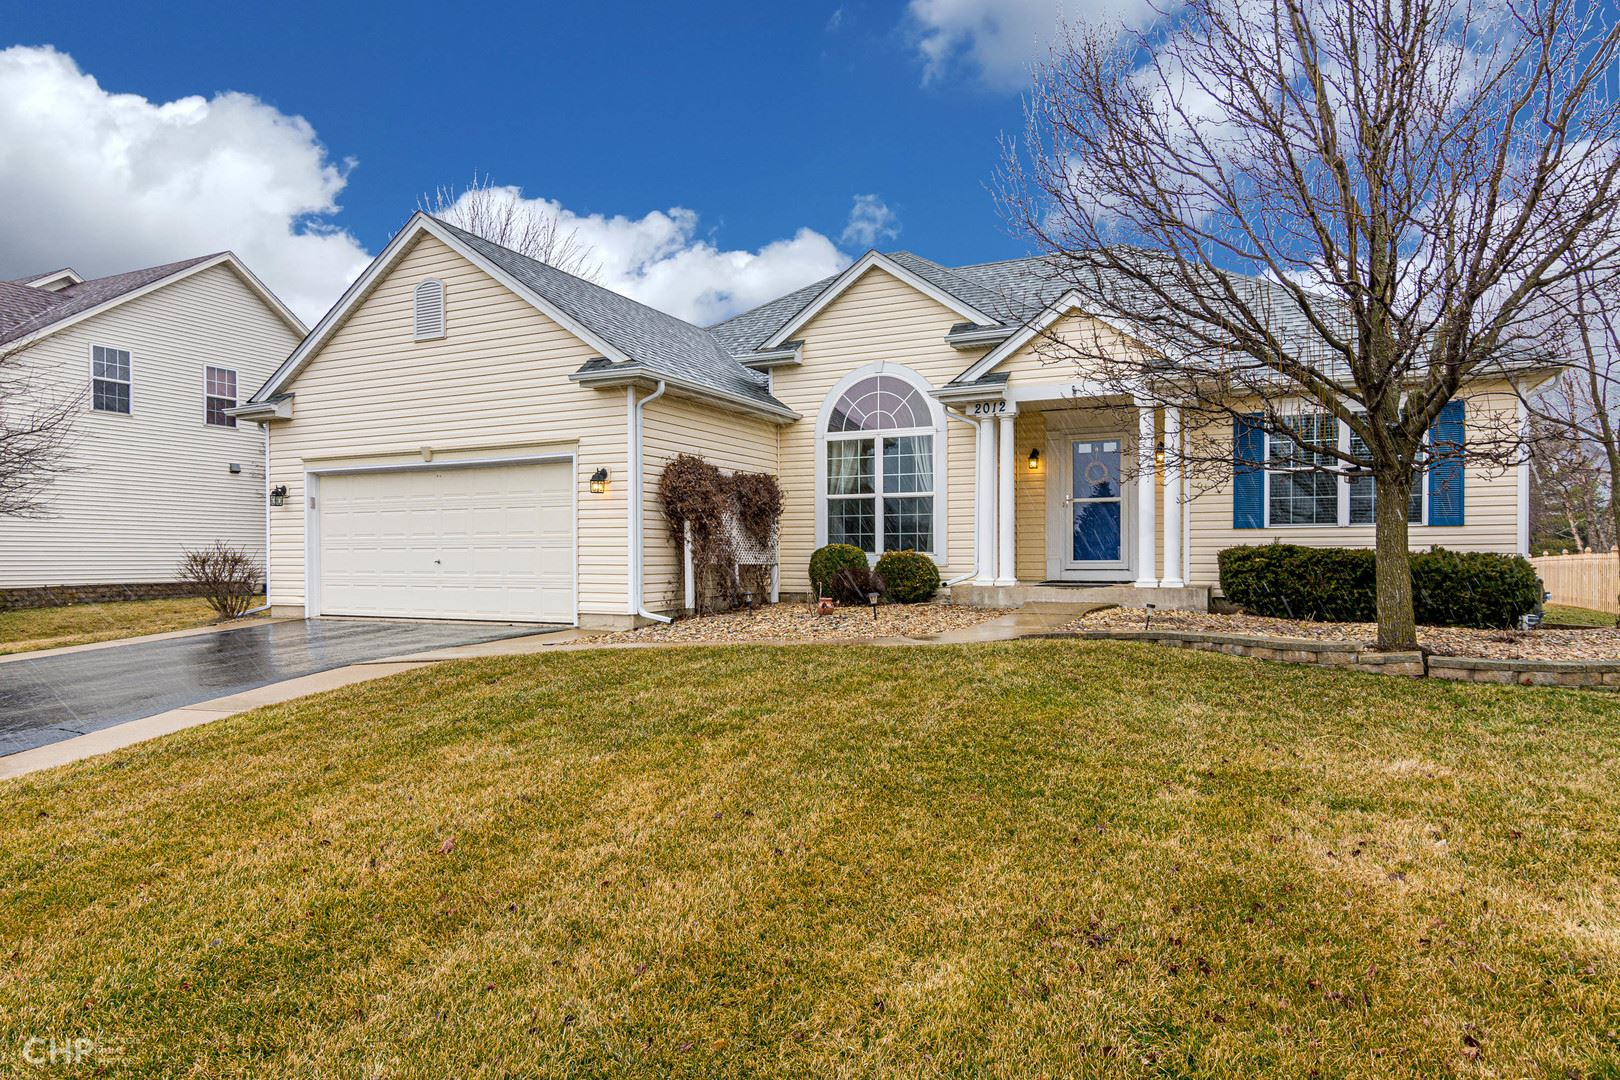 2012 Barrington Drive W, Aurora, IL 60503 - #: 10657157